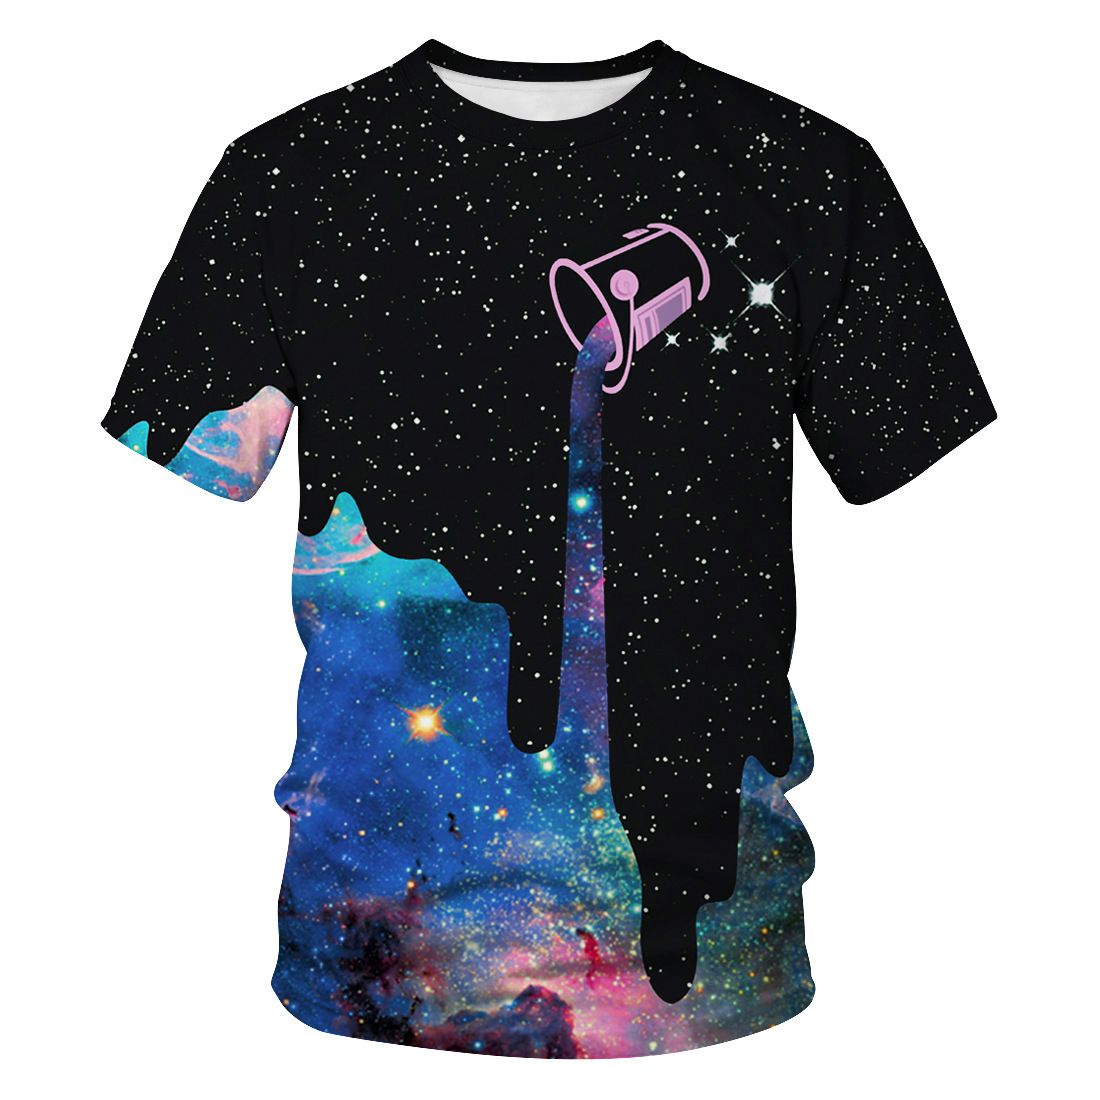 LASPERAL Galaxy Space T-shirt Casual Short Sleeve Couple Tee Shirt Classics Starry Sky Clothes Psychedelic Sky Fashion Women Top